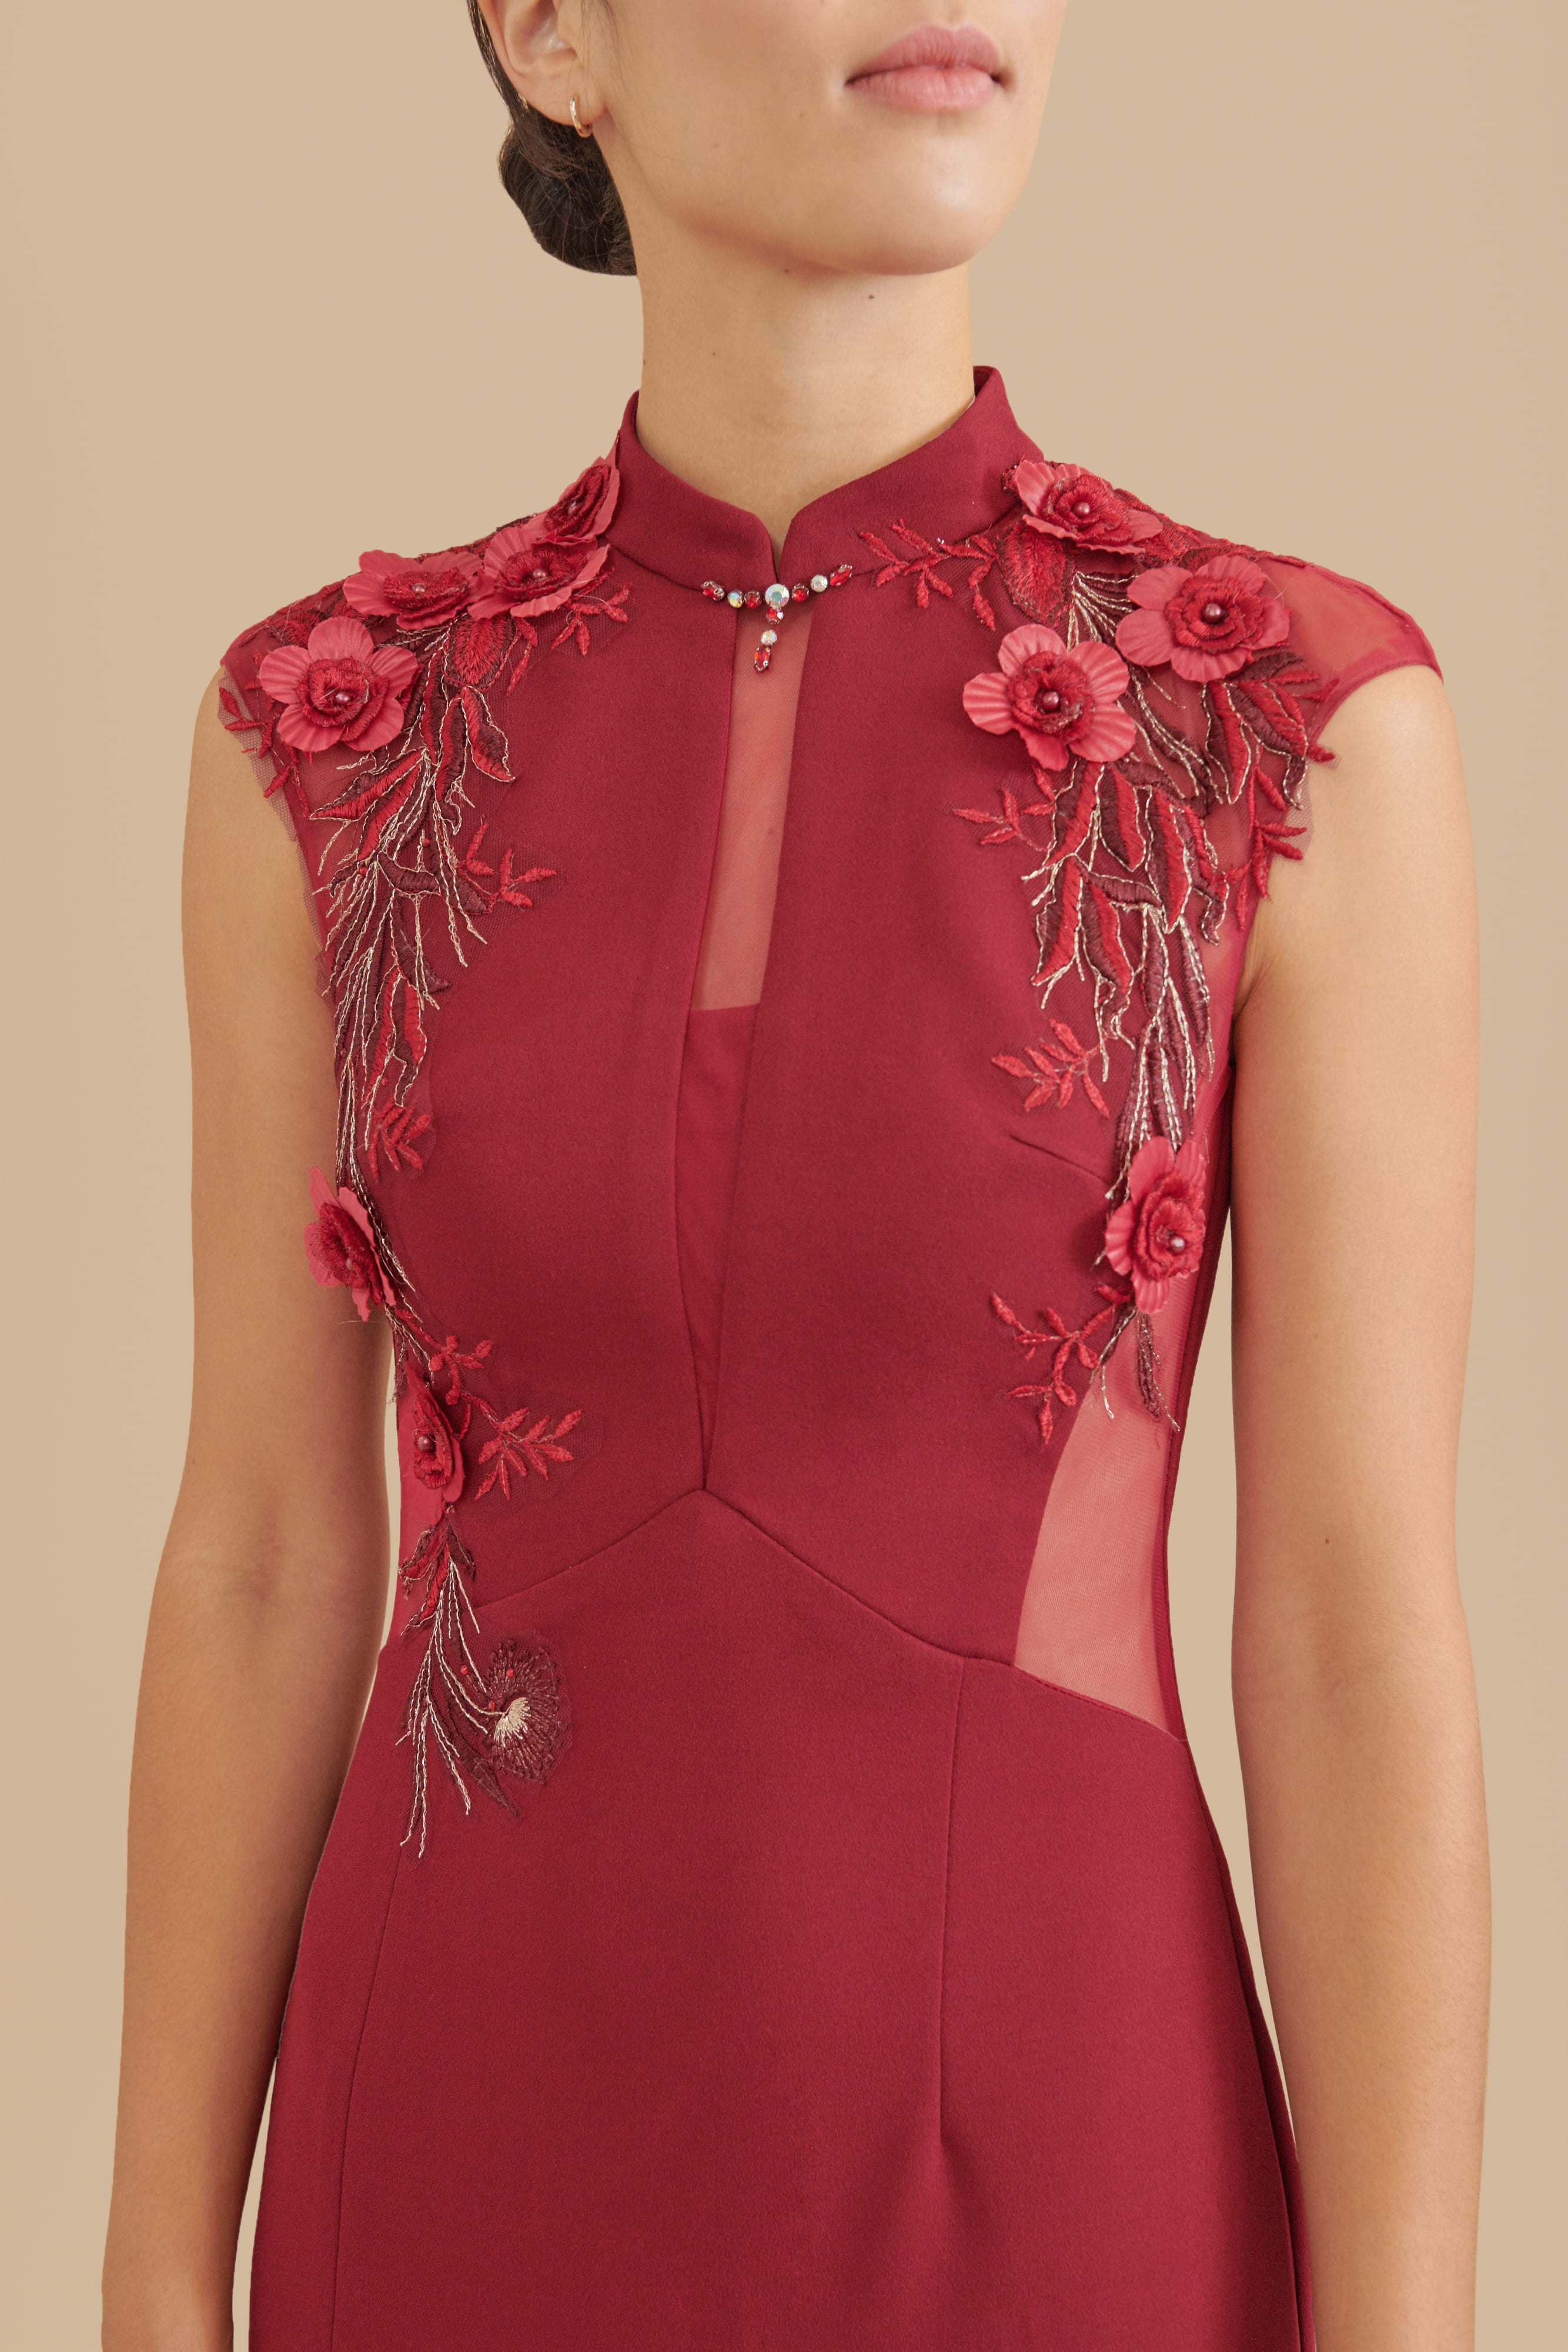 Wine Red Marilyn Dress - Ships Now | Modern Cheongsam